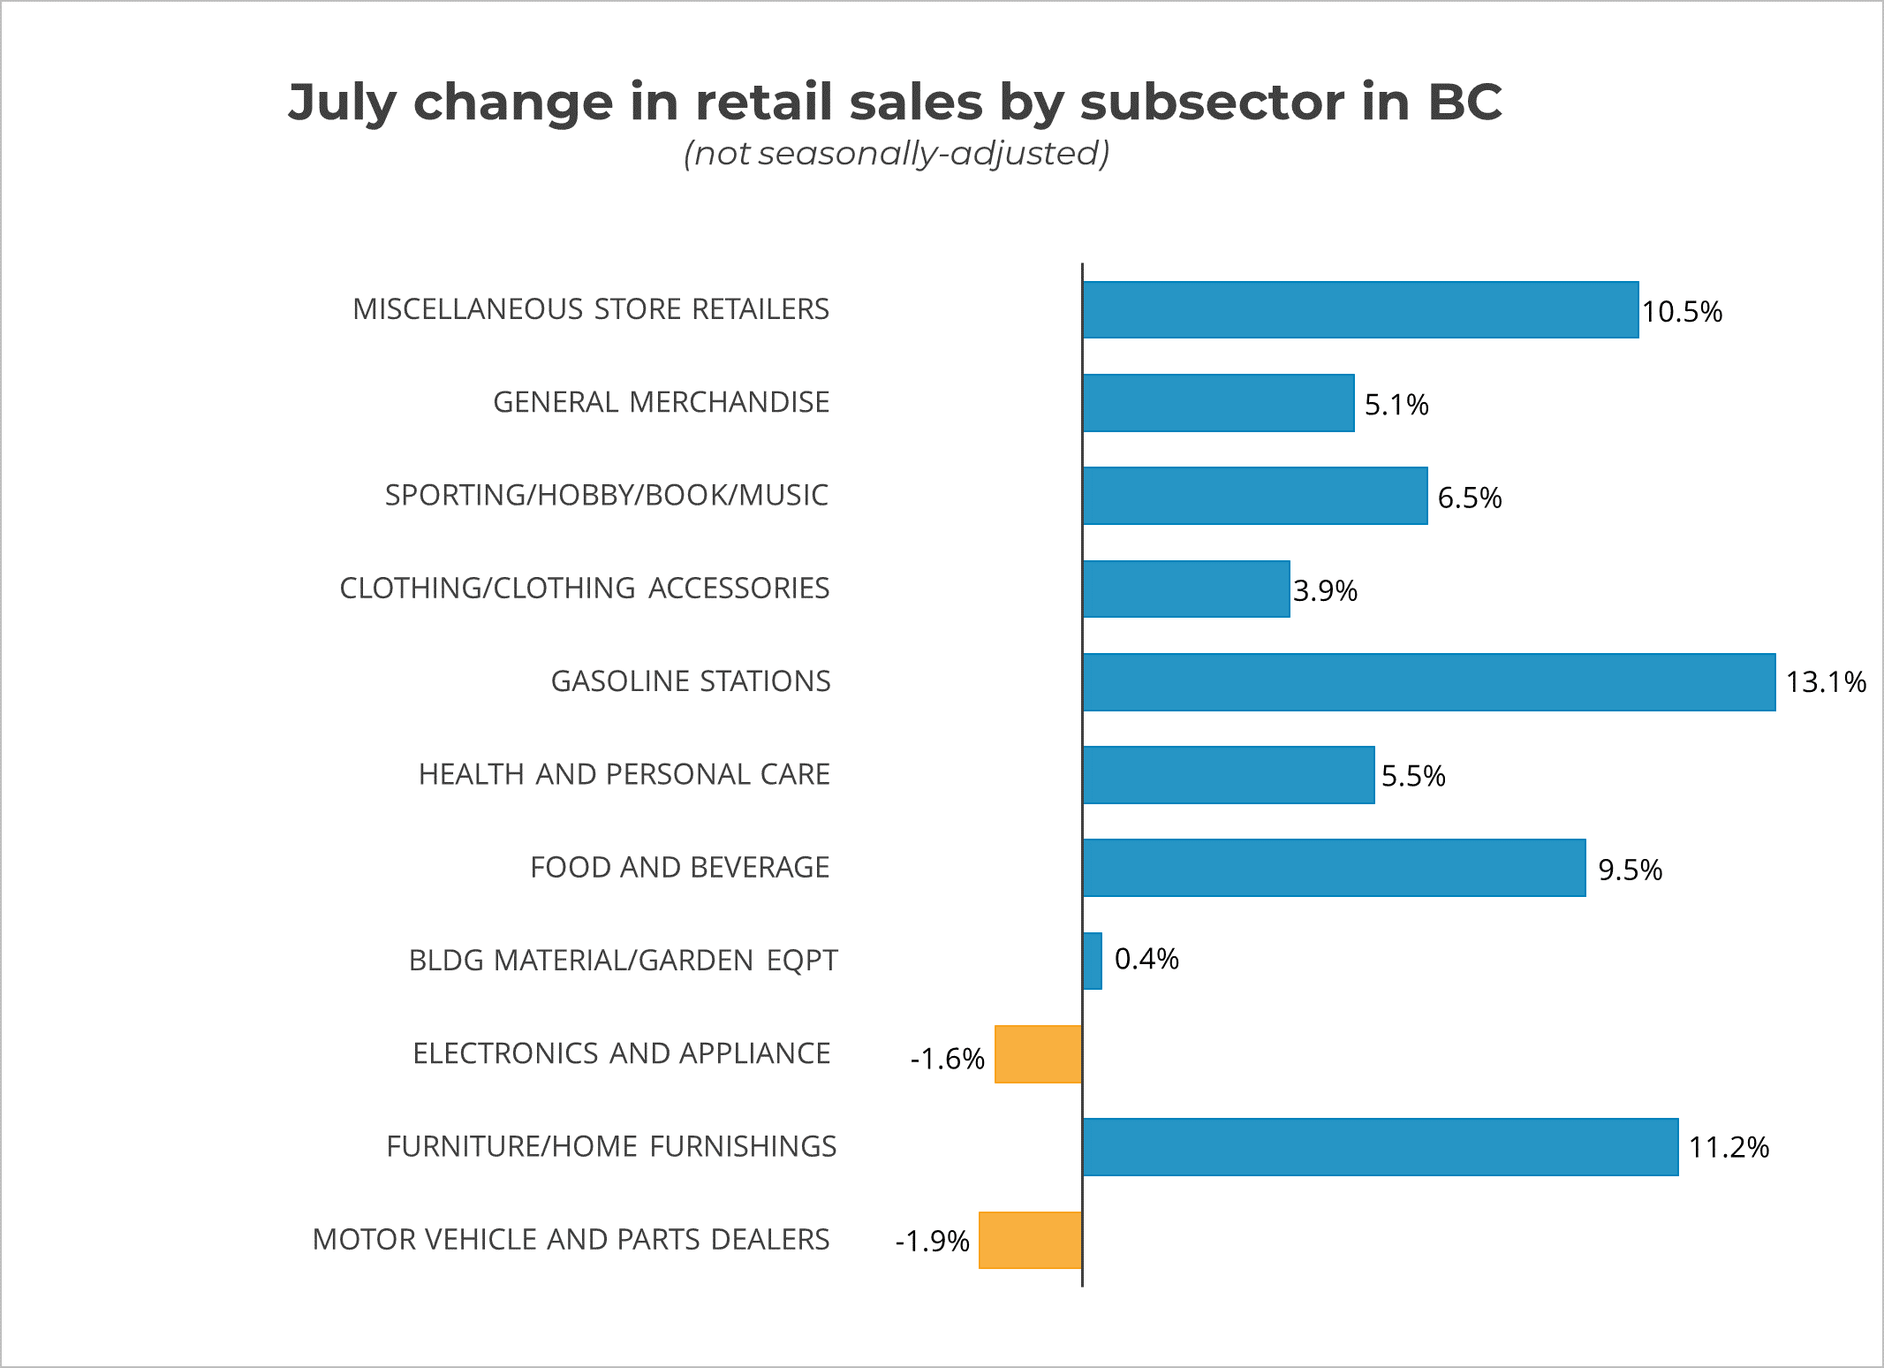 July Retail Sales by Subsector